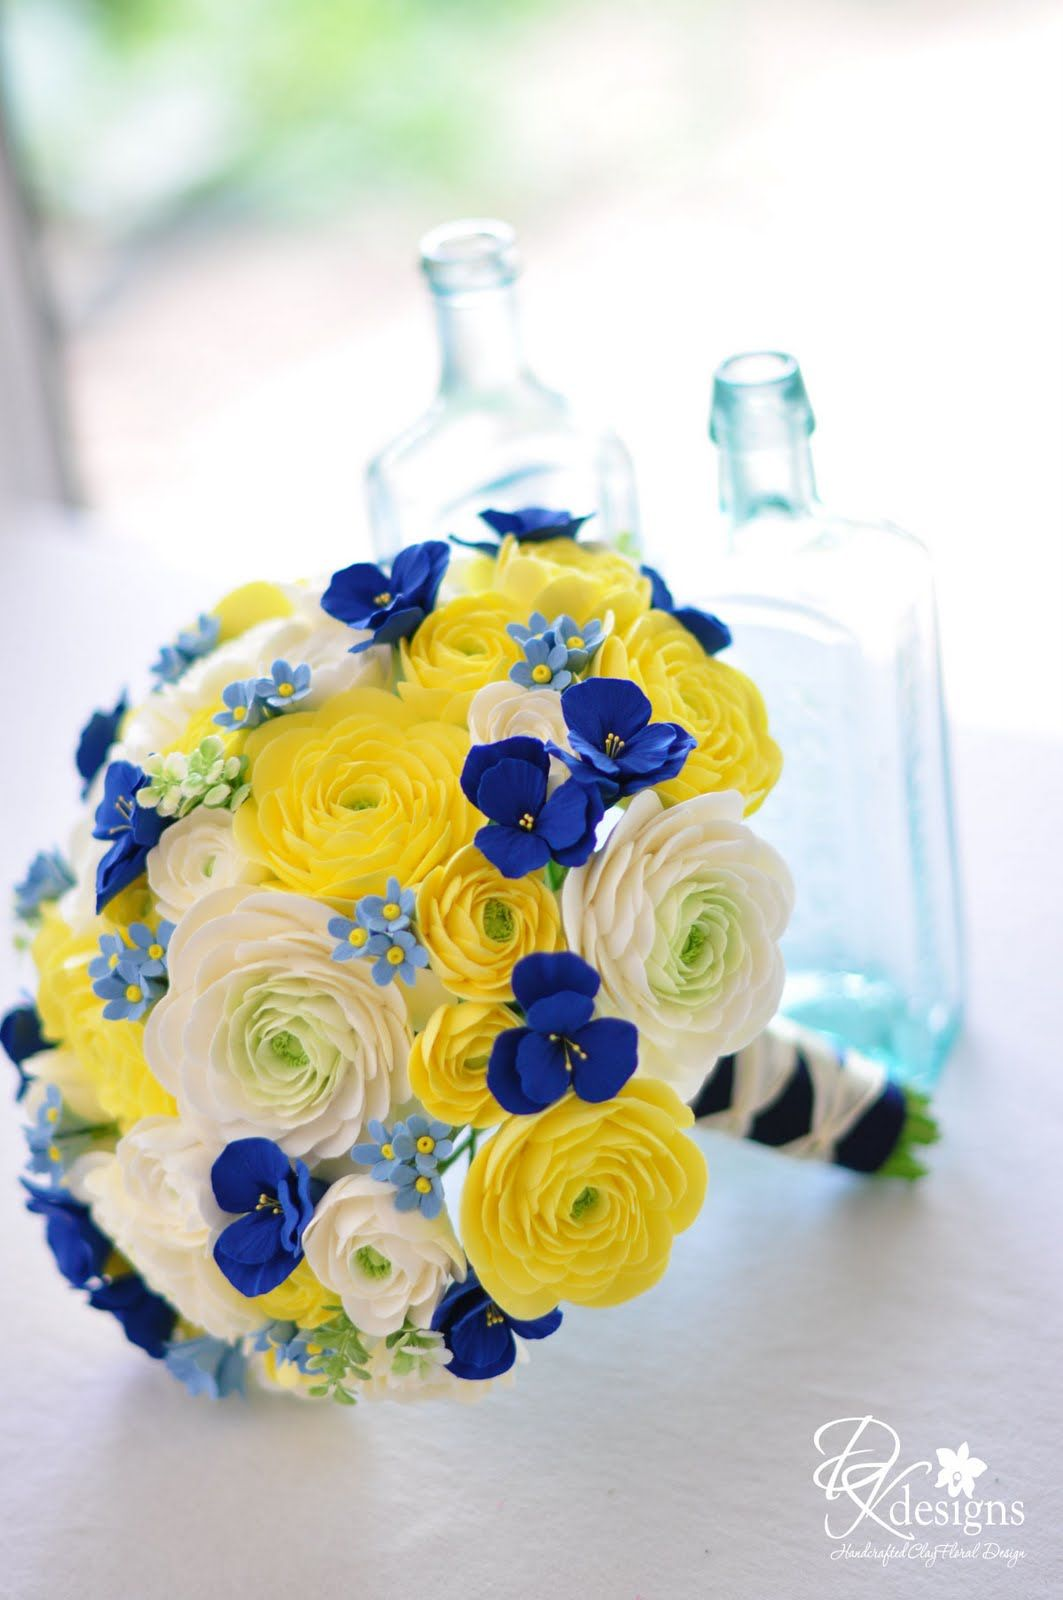 Royal Blue And Yellow Bridals Bouquet And Groom Dk Designs Butter